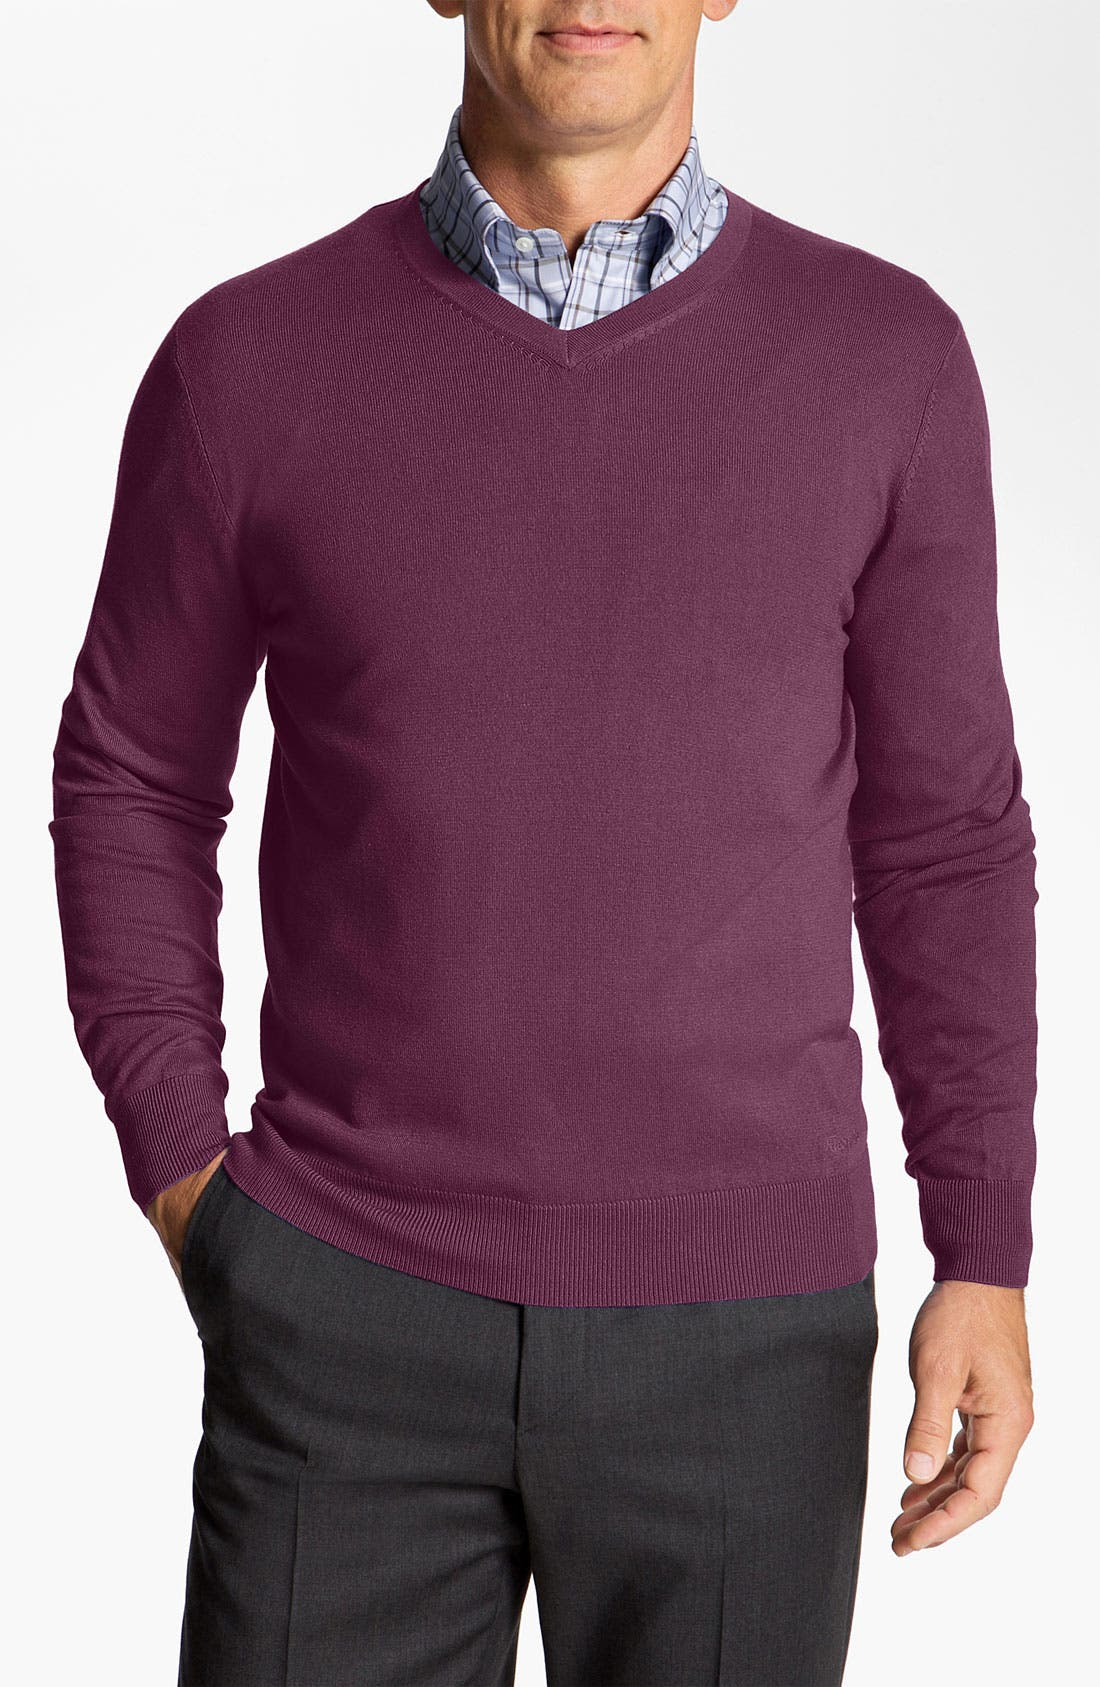 Alternate Image 1 Selected - Façonnable 'Sicoca' Classique Fit Silk Blend Sweater